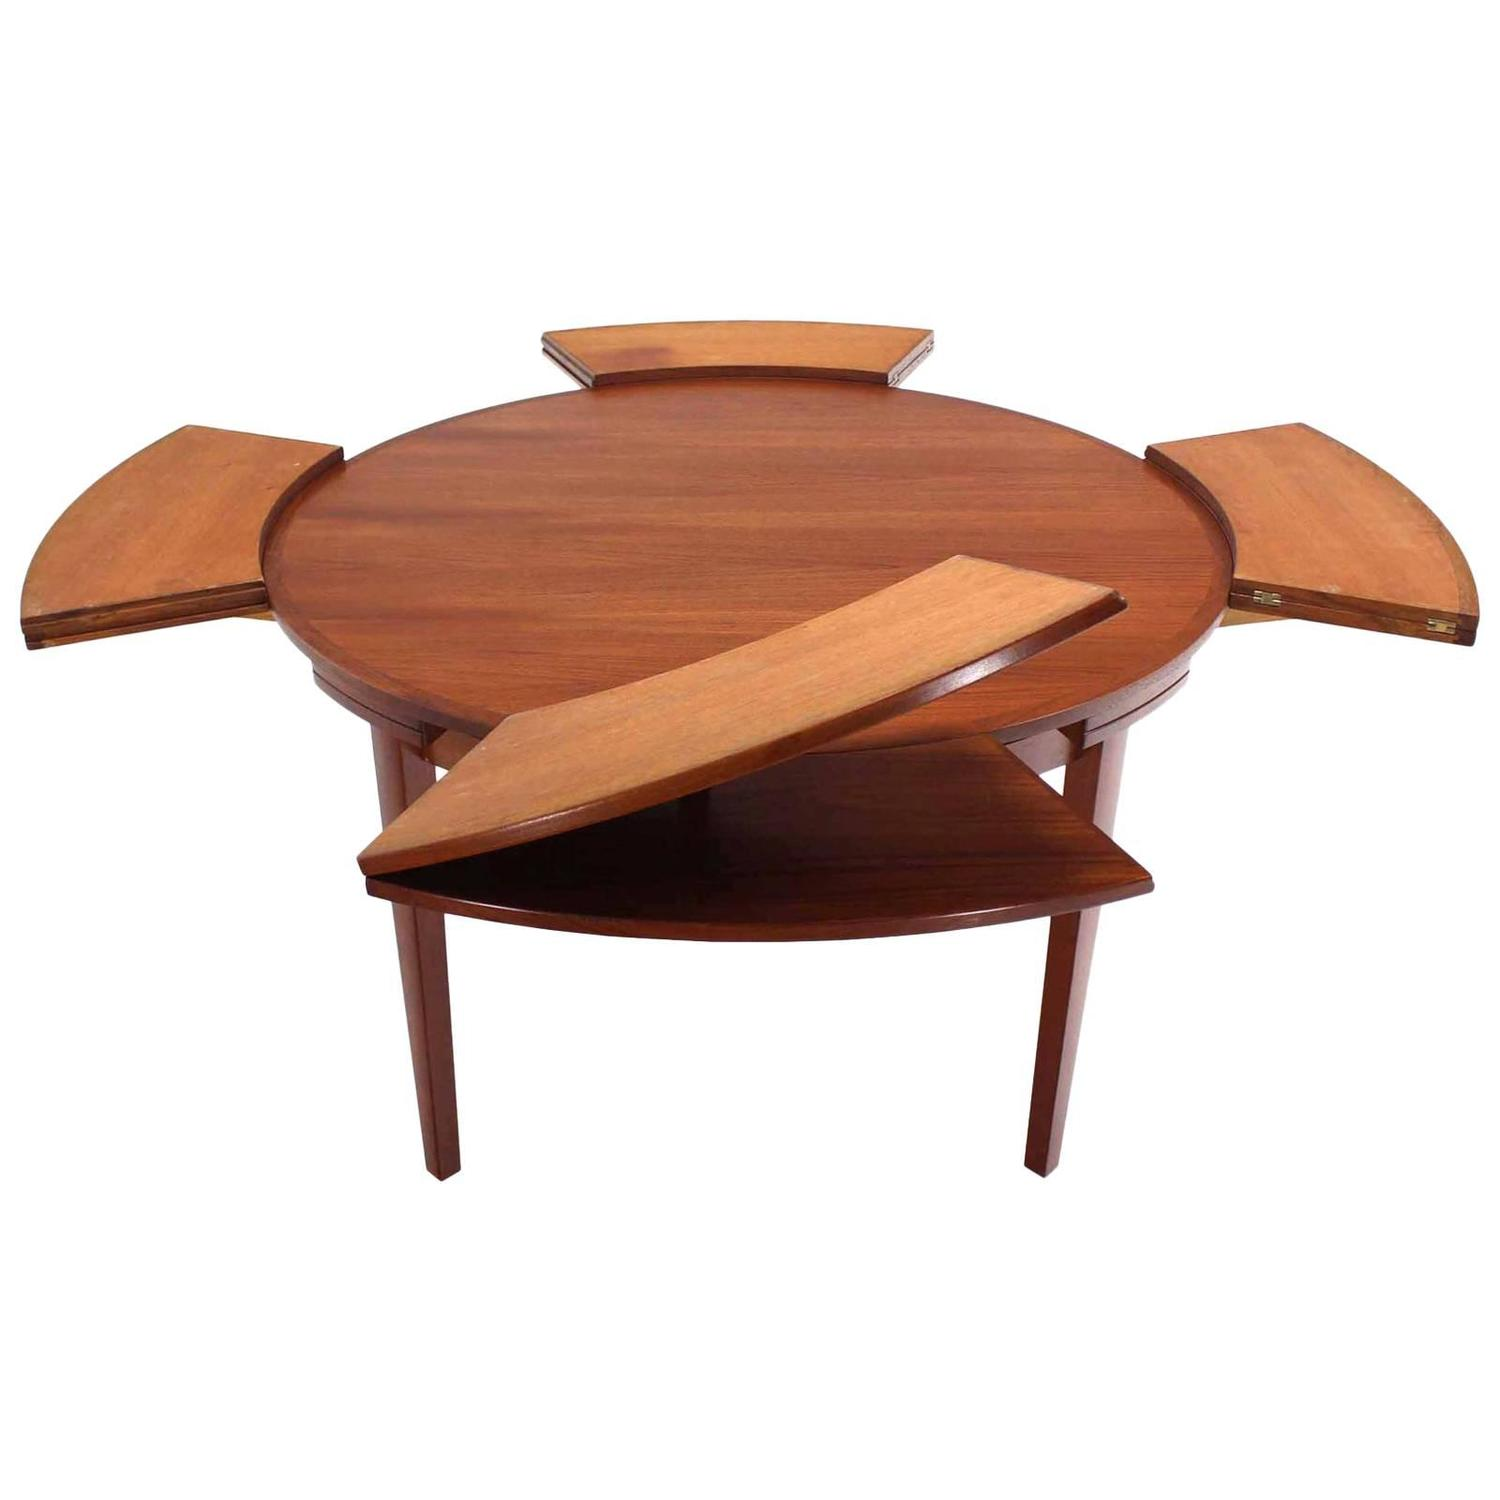 rare danish modern teak round expandable top dining table at 1stdibs. Black Bedroom Furniture Sets. Home Design Ideas